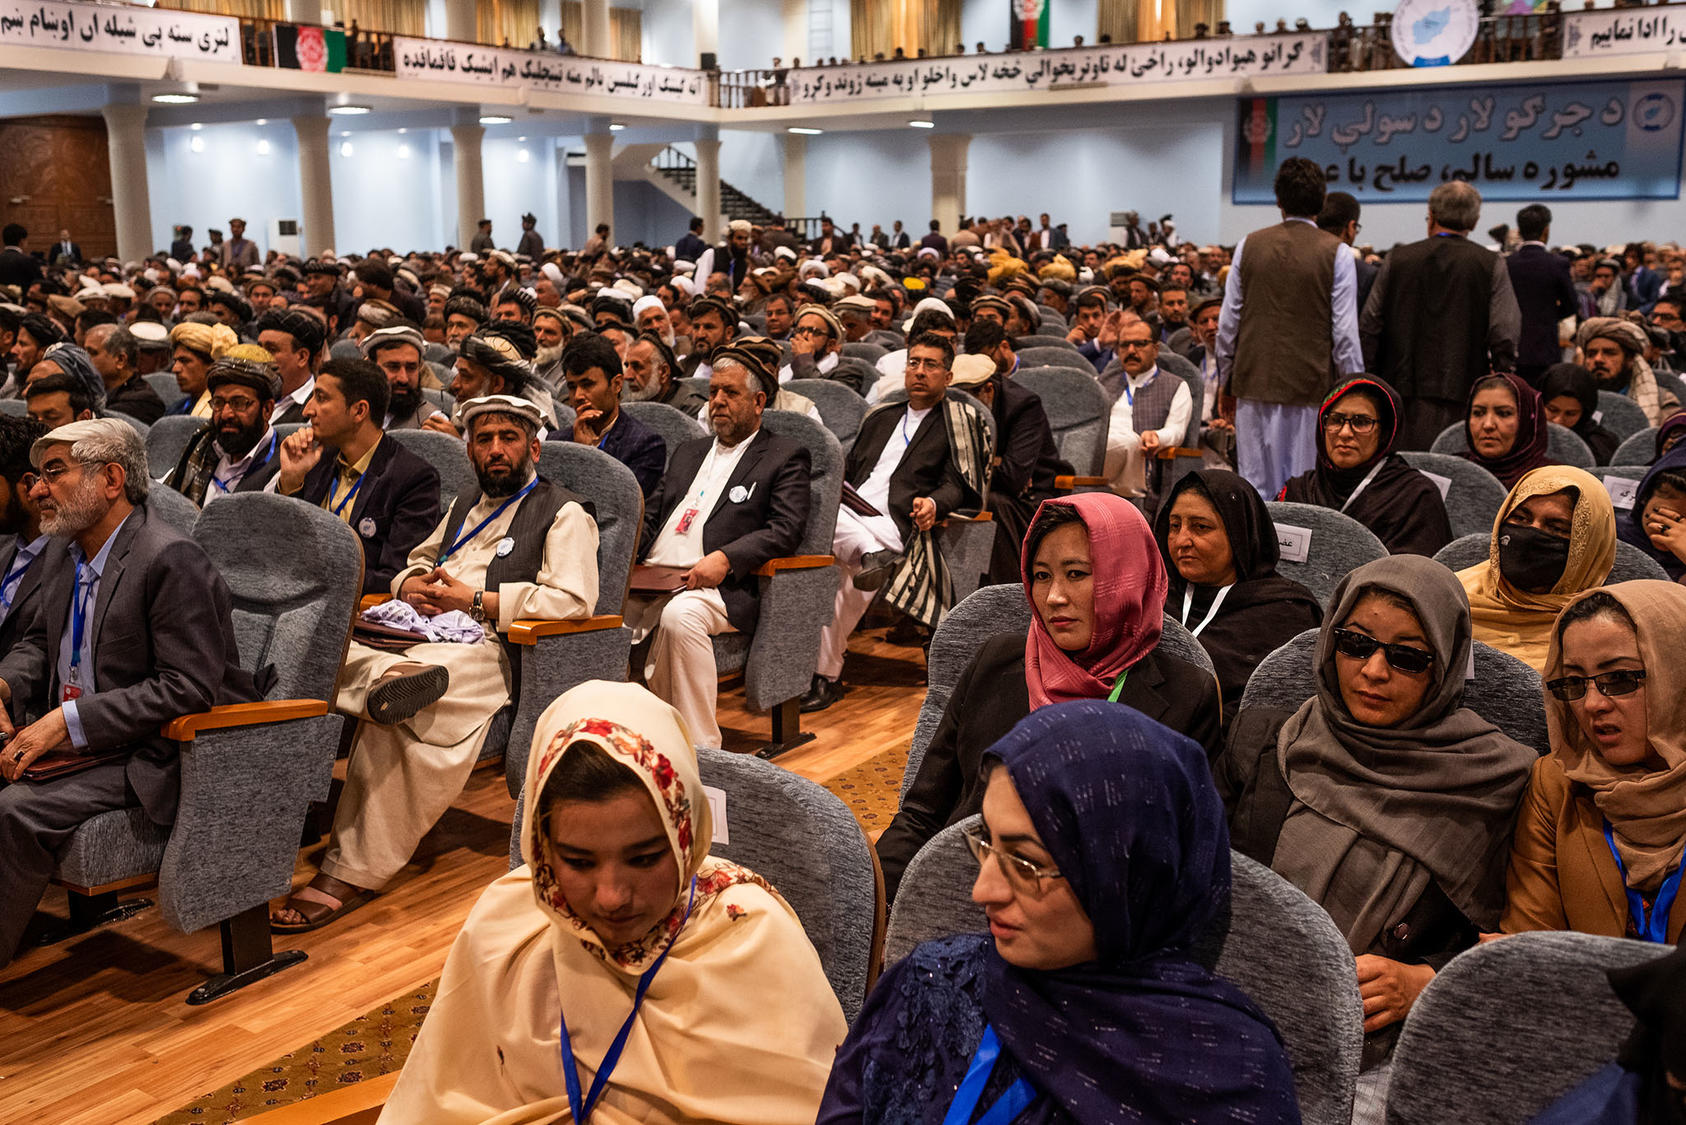 The opening session of the loya jirga, a yearly tribal assembly where some 30 percent of participants are now women, in Kabul, Afghanistan, April 29, 2019. (Jim Huylebroek/The New York Times)